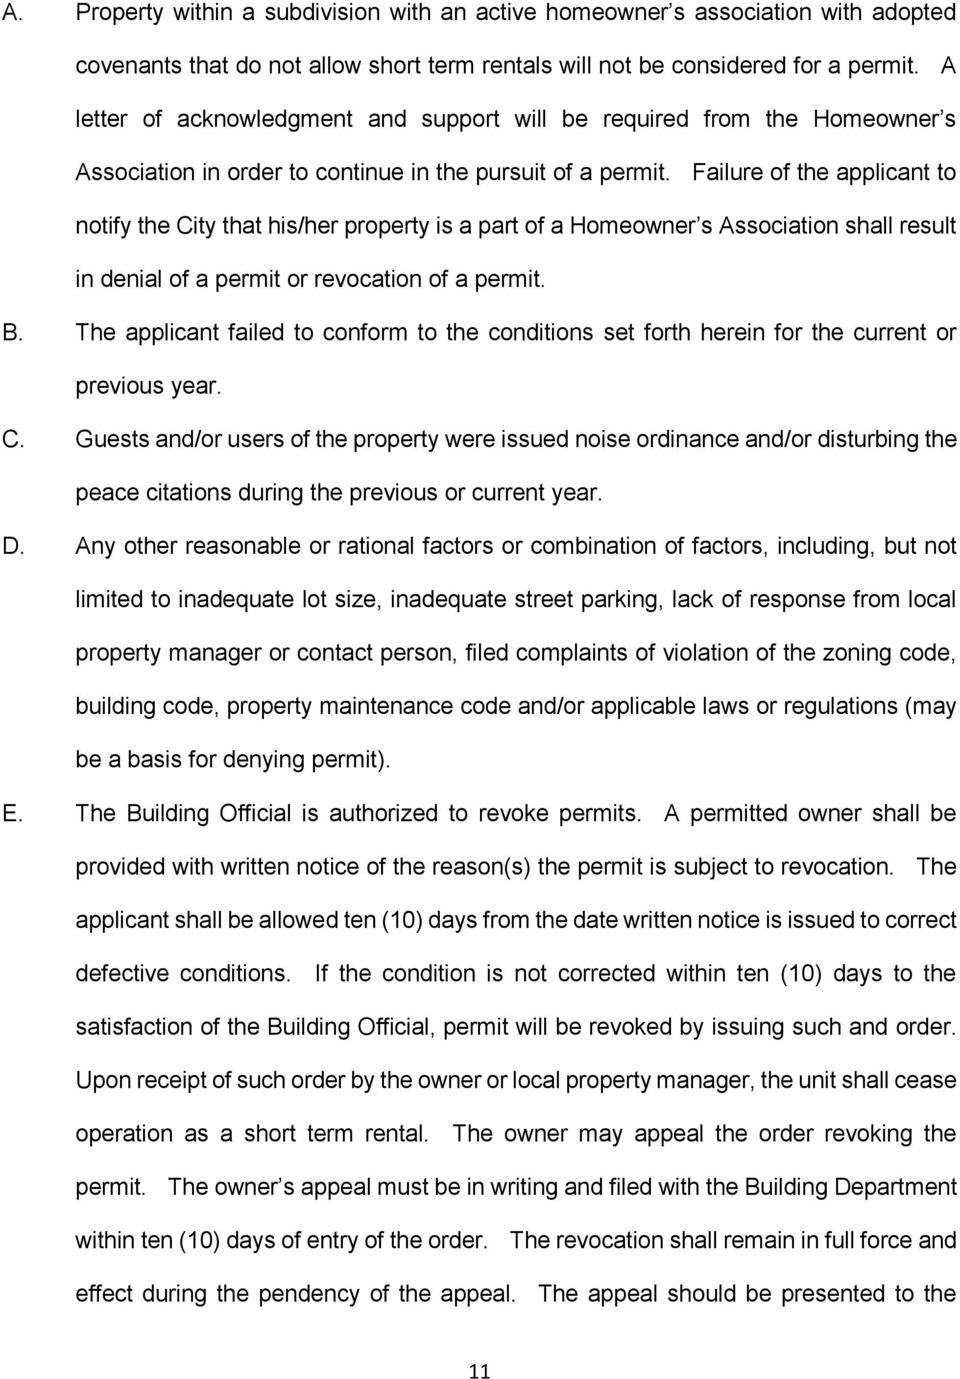 Failure of the applicant to notify the City that his/her property is a part of a Homeowner s Association shall result in denial of a permit or revocation of a permit. B.